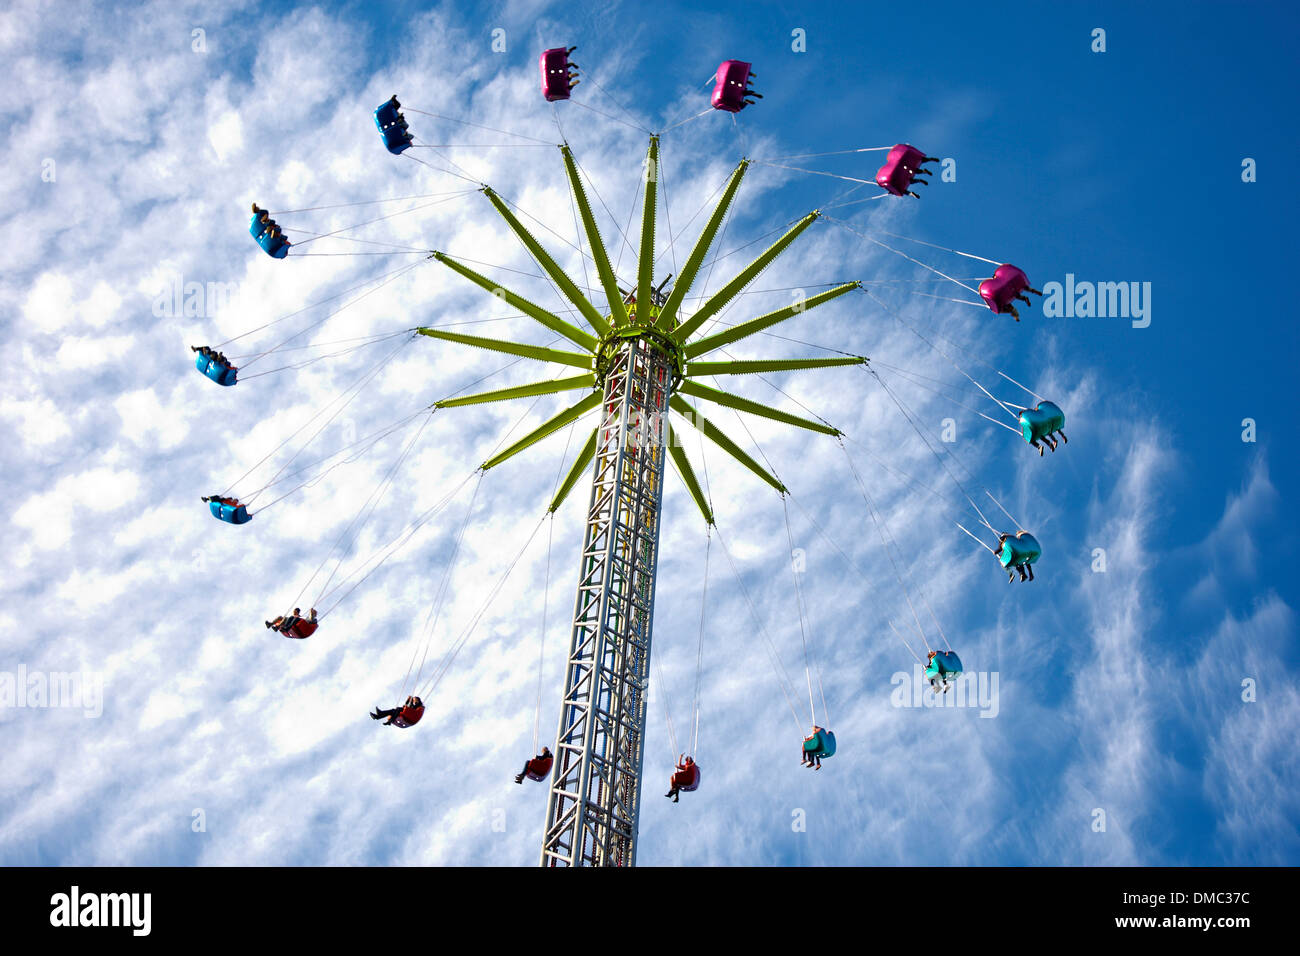 A high rise fun ride in Swansea ahead of Christmas - Stock Image